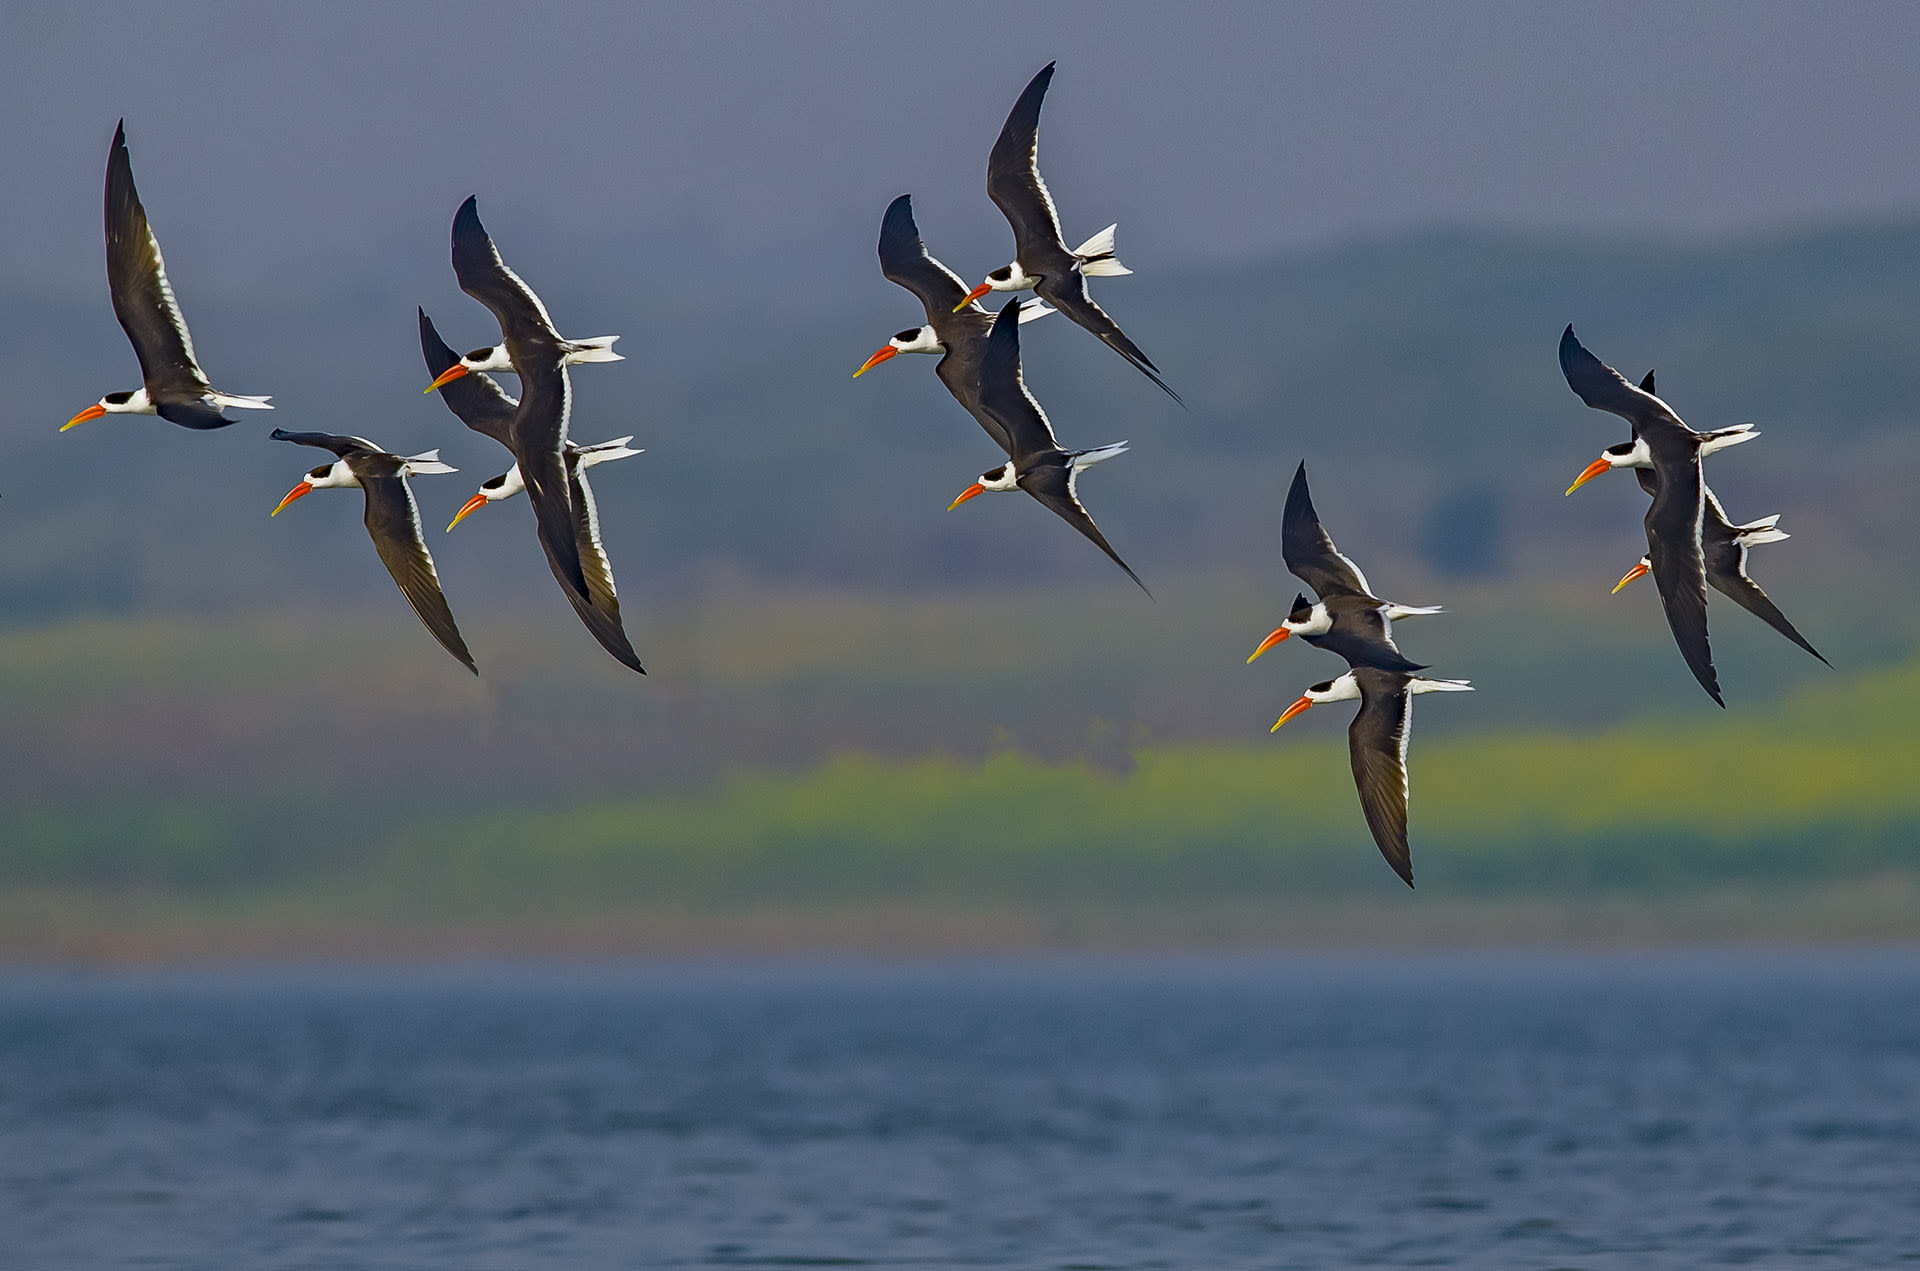 The Chambal riverscape is far from the Rajasthan of popular imagination. Instead of dunes and dust, this habitat has perennial freshwater, riverbanks blanketed with green, and a diversity of water-loving birds such as these Indian skimmers (Rynchops albicollis). Fed primarily by the Chambal River, this riverscape continues downstream into the famous National Chambal Sanctuary (in Madhya Pradesh) which is the abode of the critically endangered gharials. Photo: Dhritiman Mukherjee